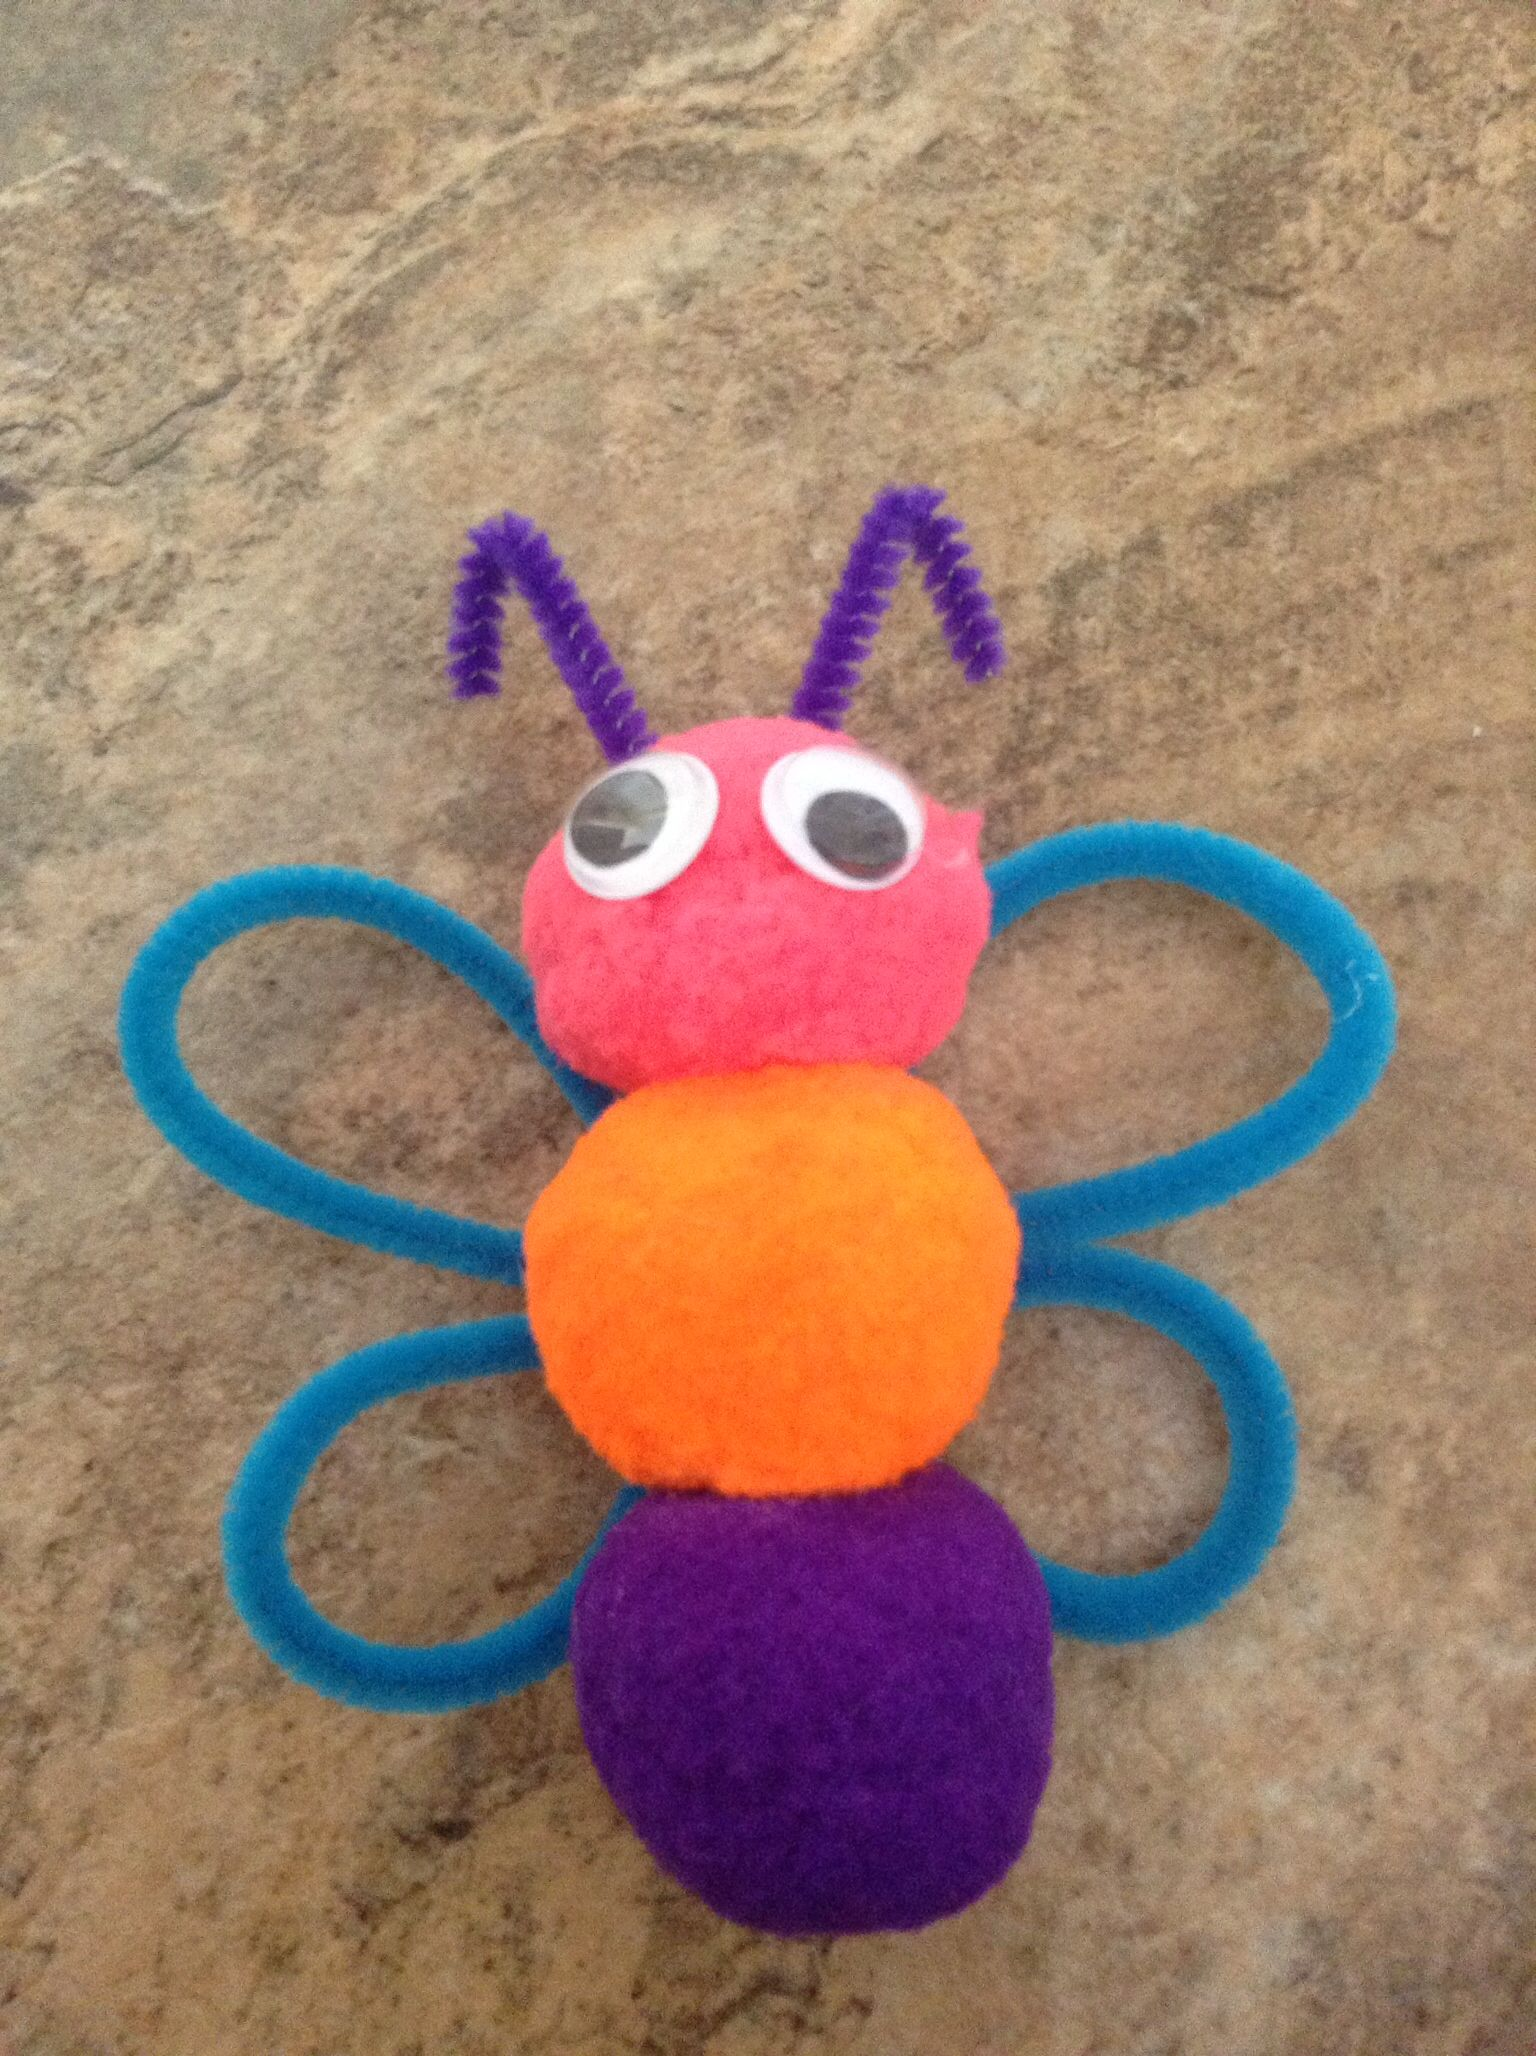 Easy Crafts With Pipe Cleaners And Pom Poms